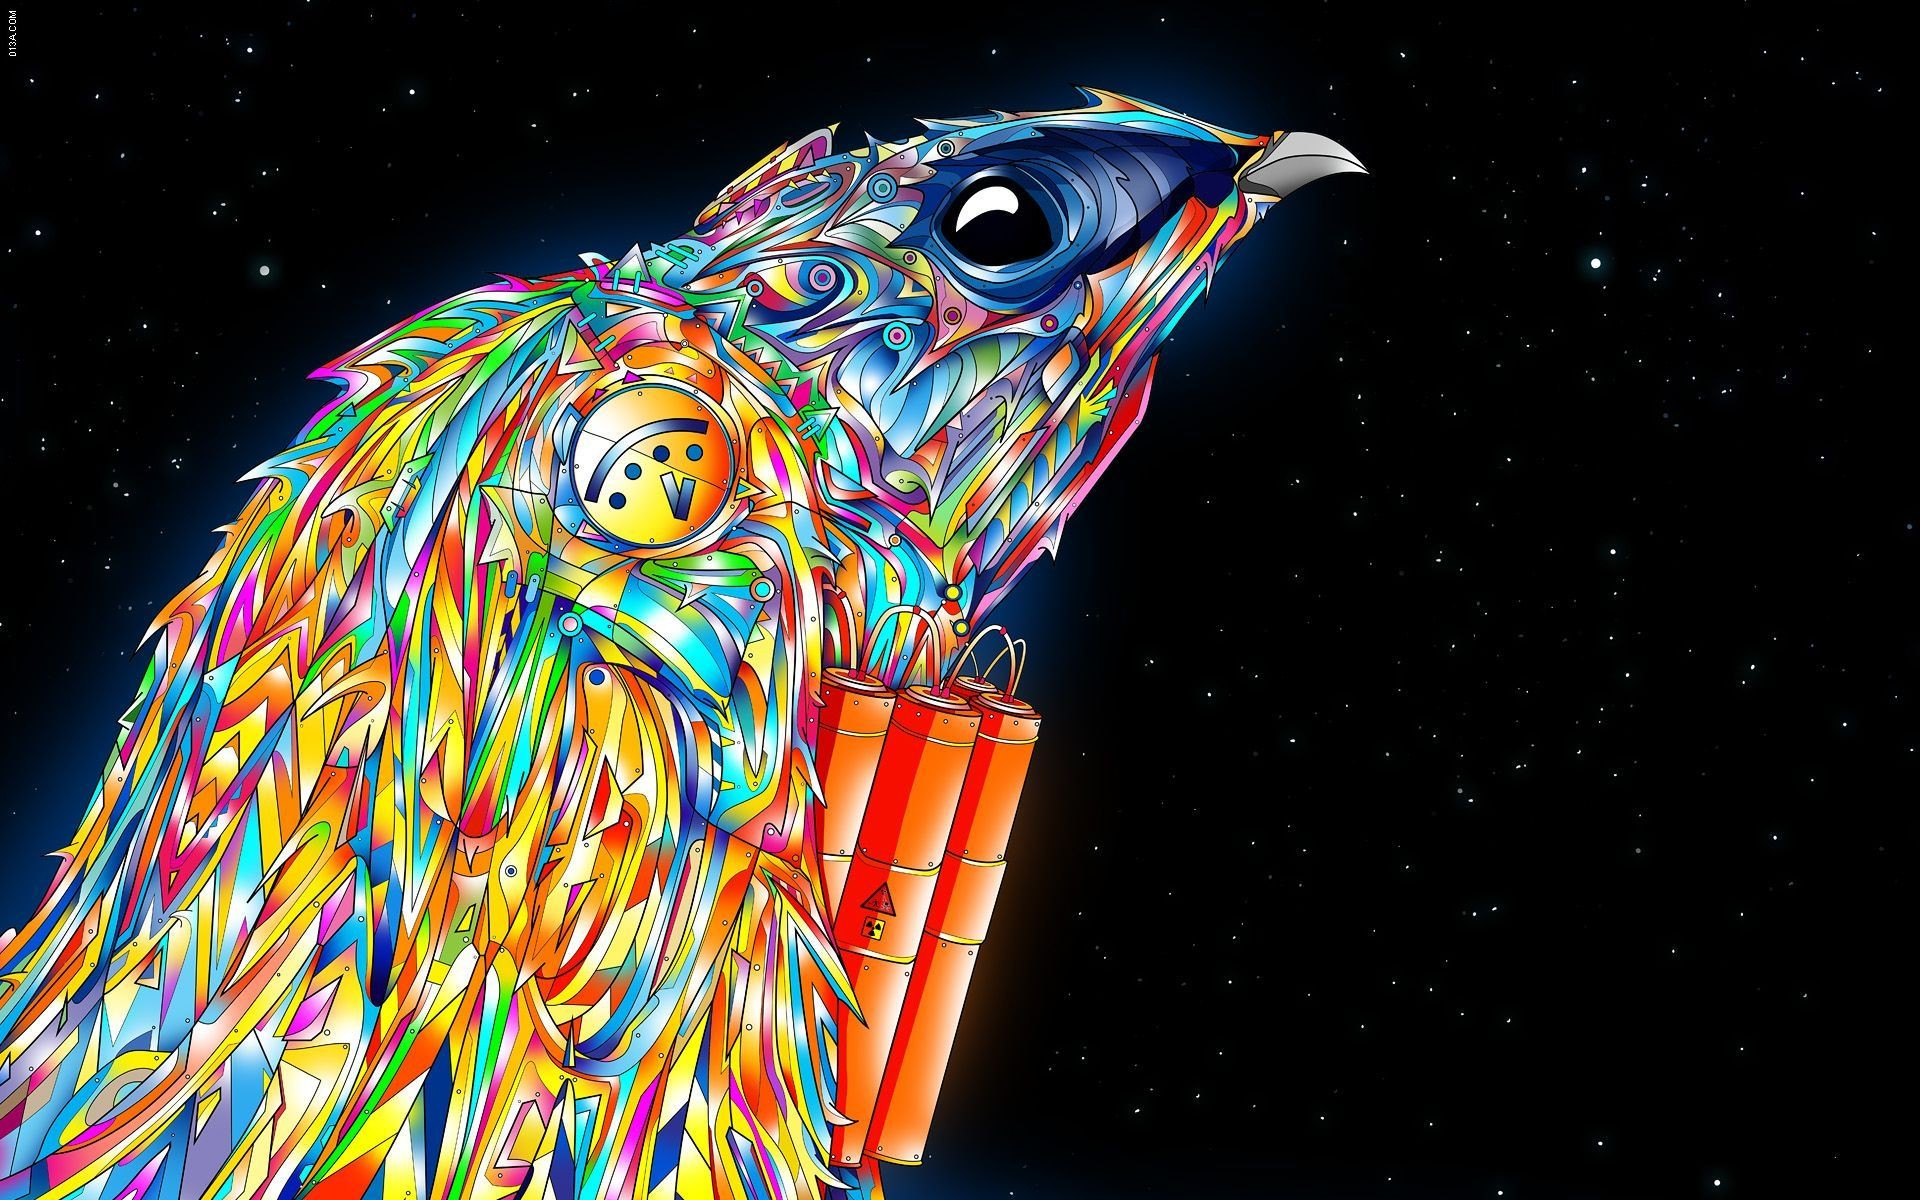 Best Psychedelic and Trippy Backgrounds to use as Desktop or Psychedelic Wallpapers  Wallpapers)